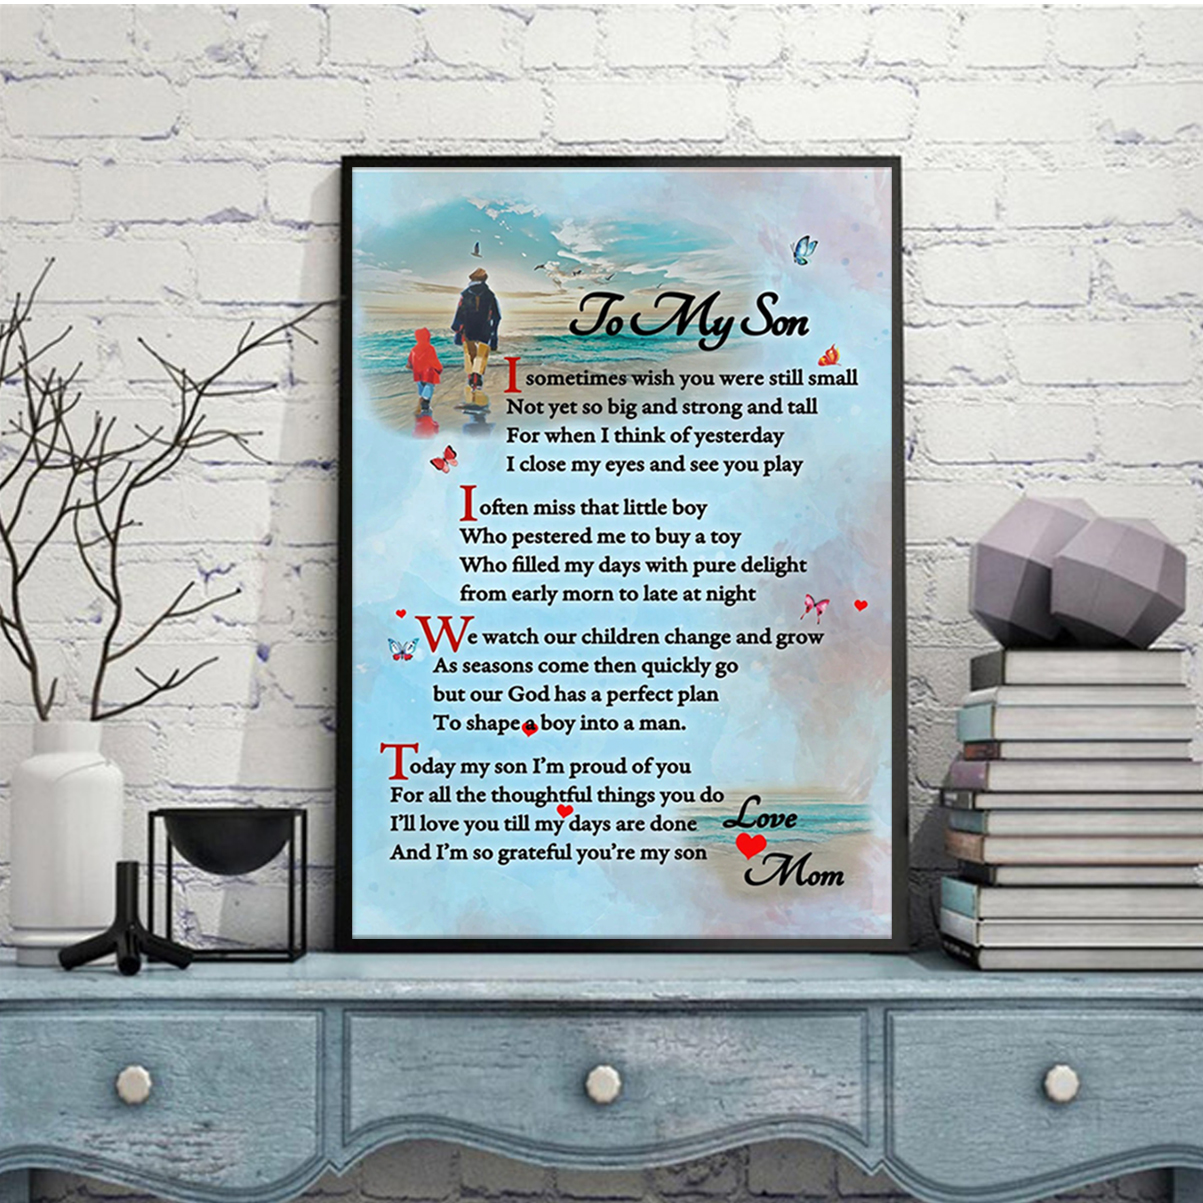 To my son mom canvas prints and poster A2